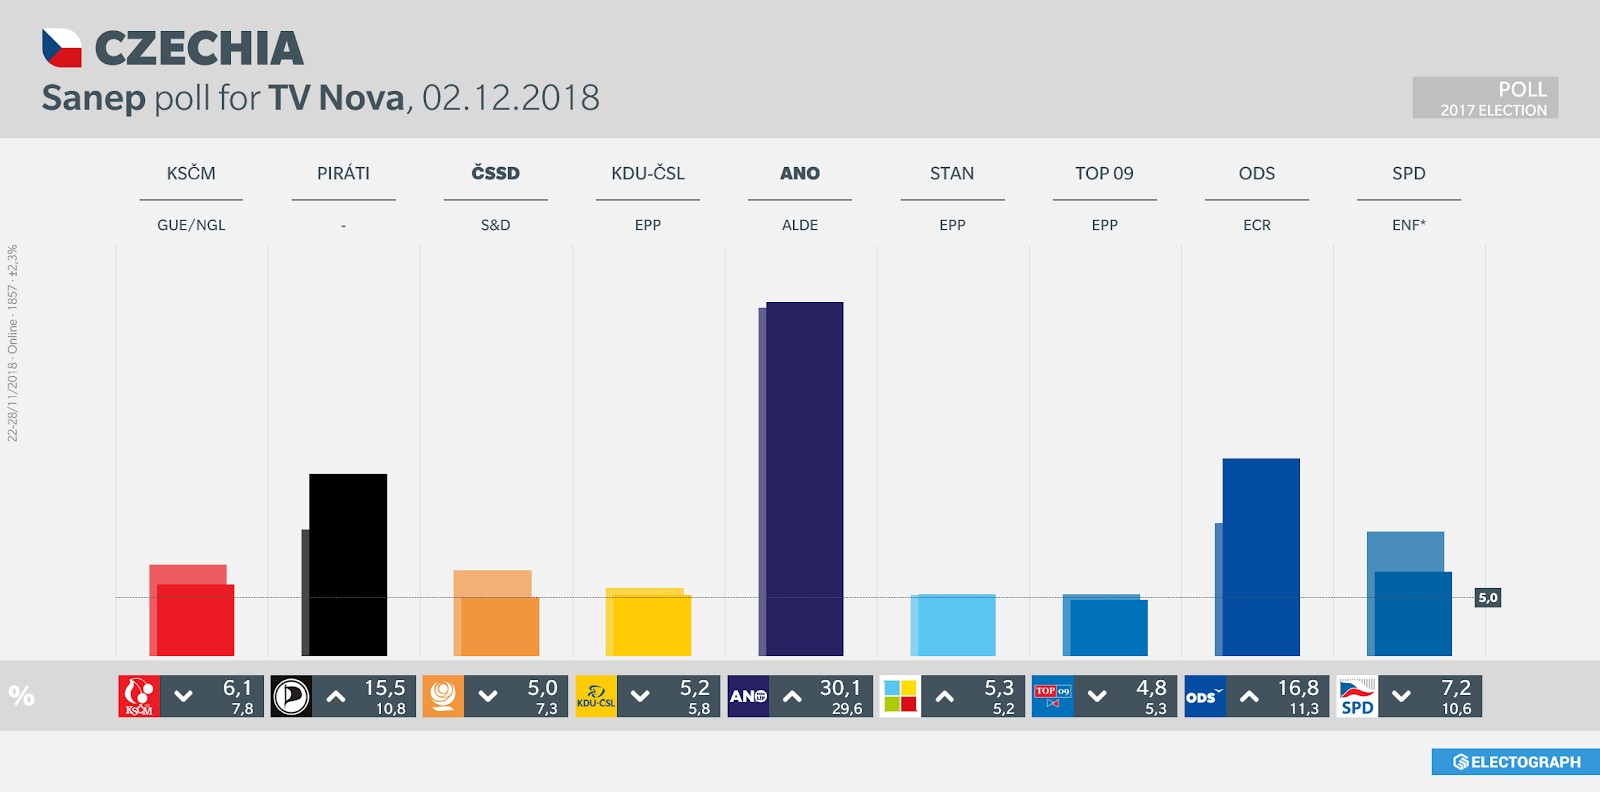 CZECHIA: Sanep poll chart for TV Nova, 2 December 2018